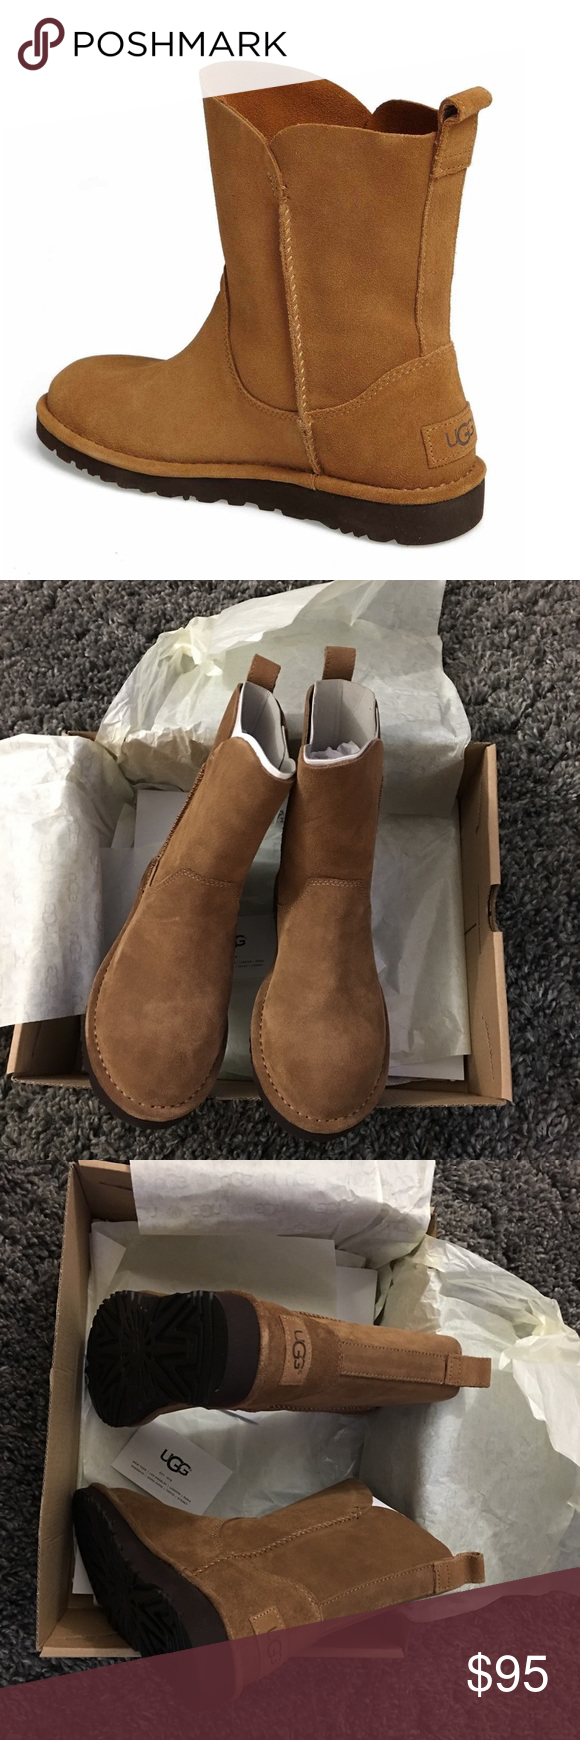 c98a51194fa New UGG Alida suede Boots New UGG Aliya suede Boots classic ...